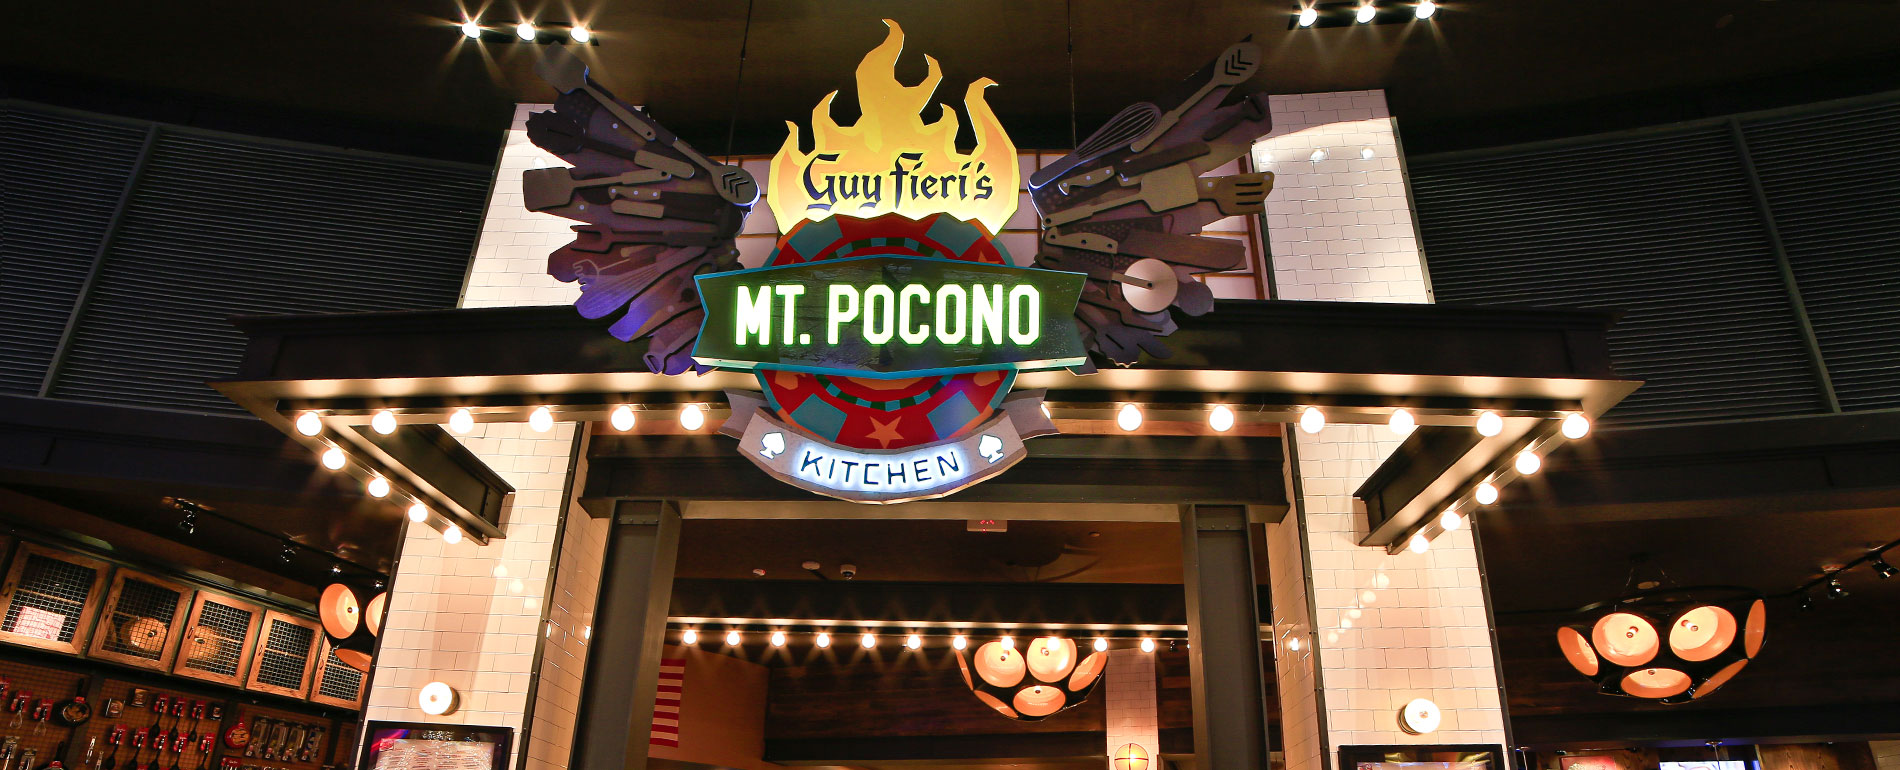 mount Poconos Restaurant Dining - Guy Fieri Mt Ponoco Kitchen